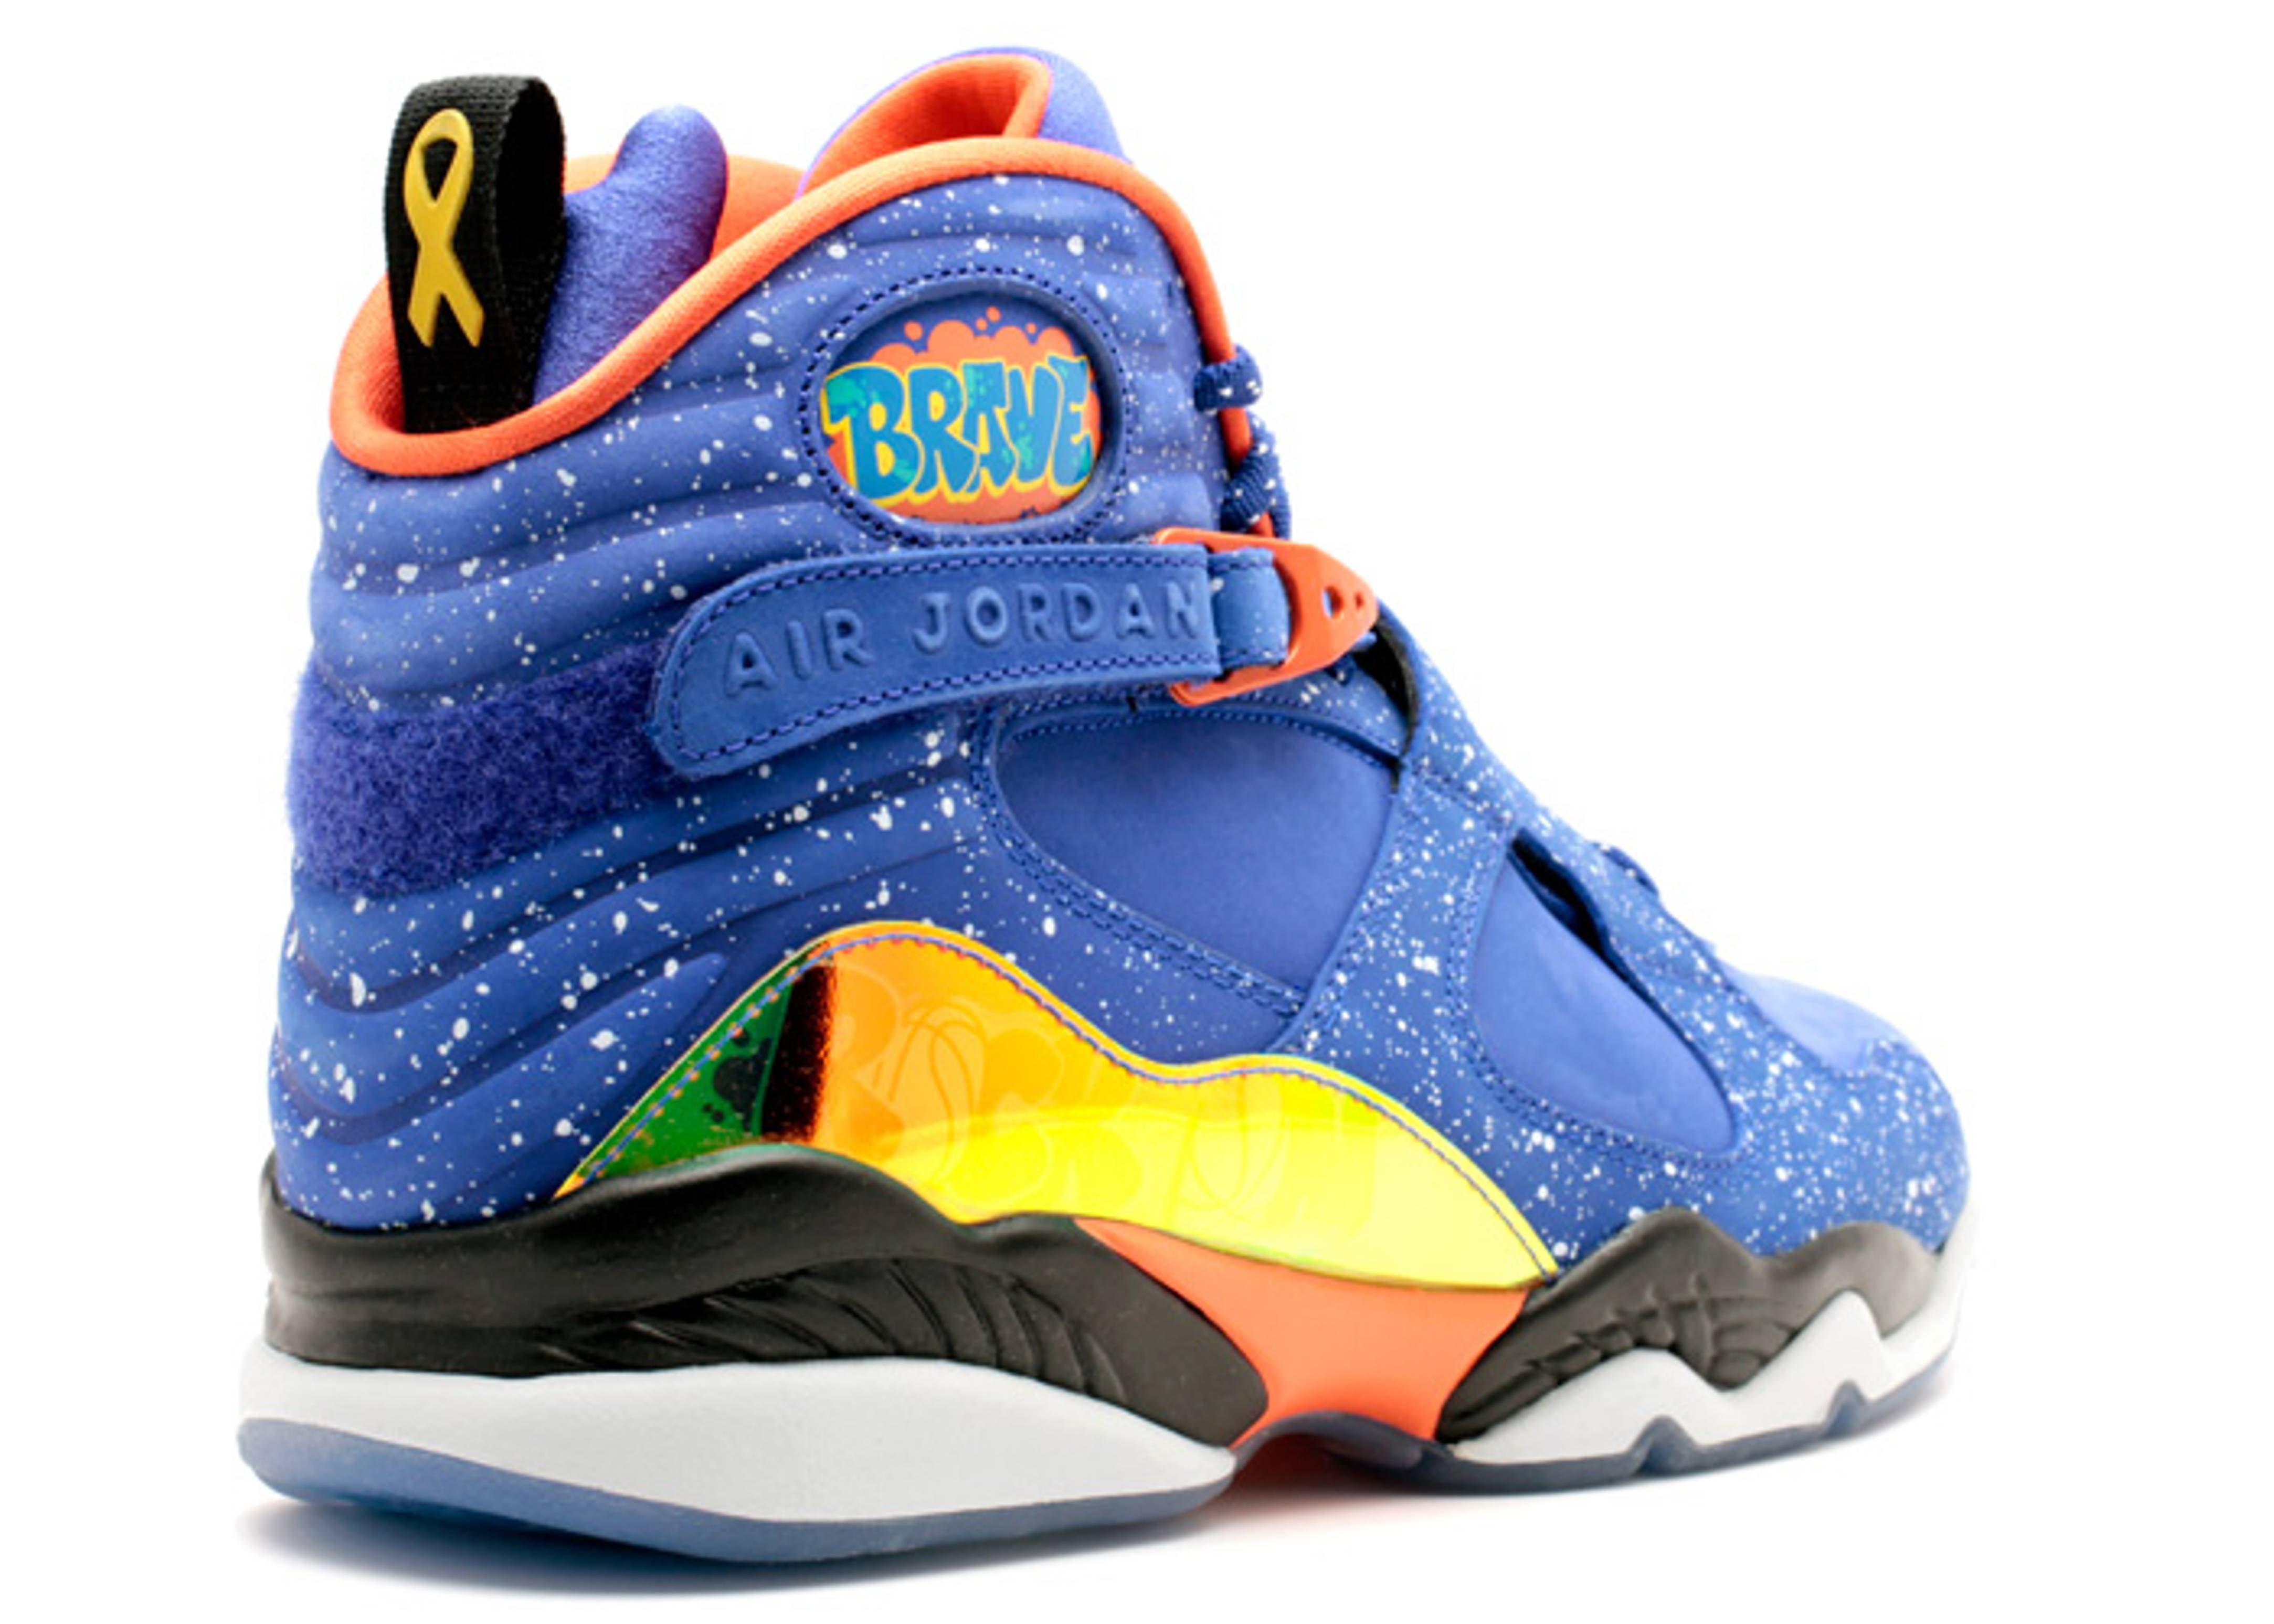 newest b92f9 e8cf5 ... where can i buy air jordan 8 retro db doernbecher air jordan 729893 480 hyper  blue